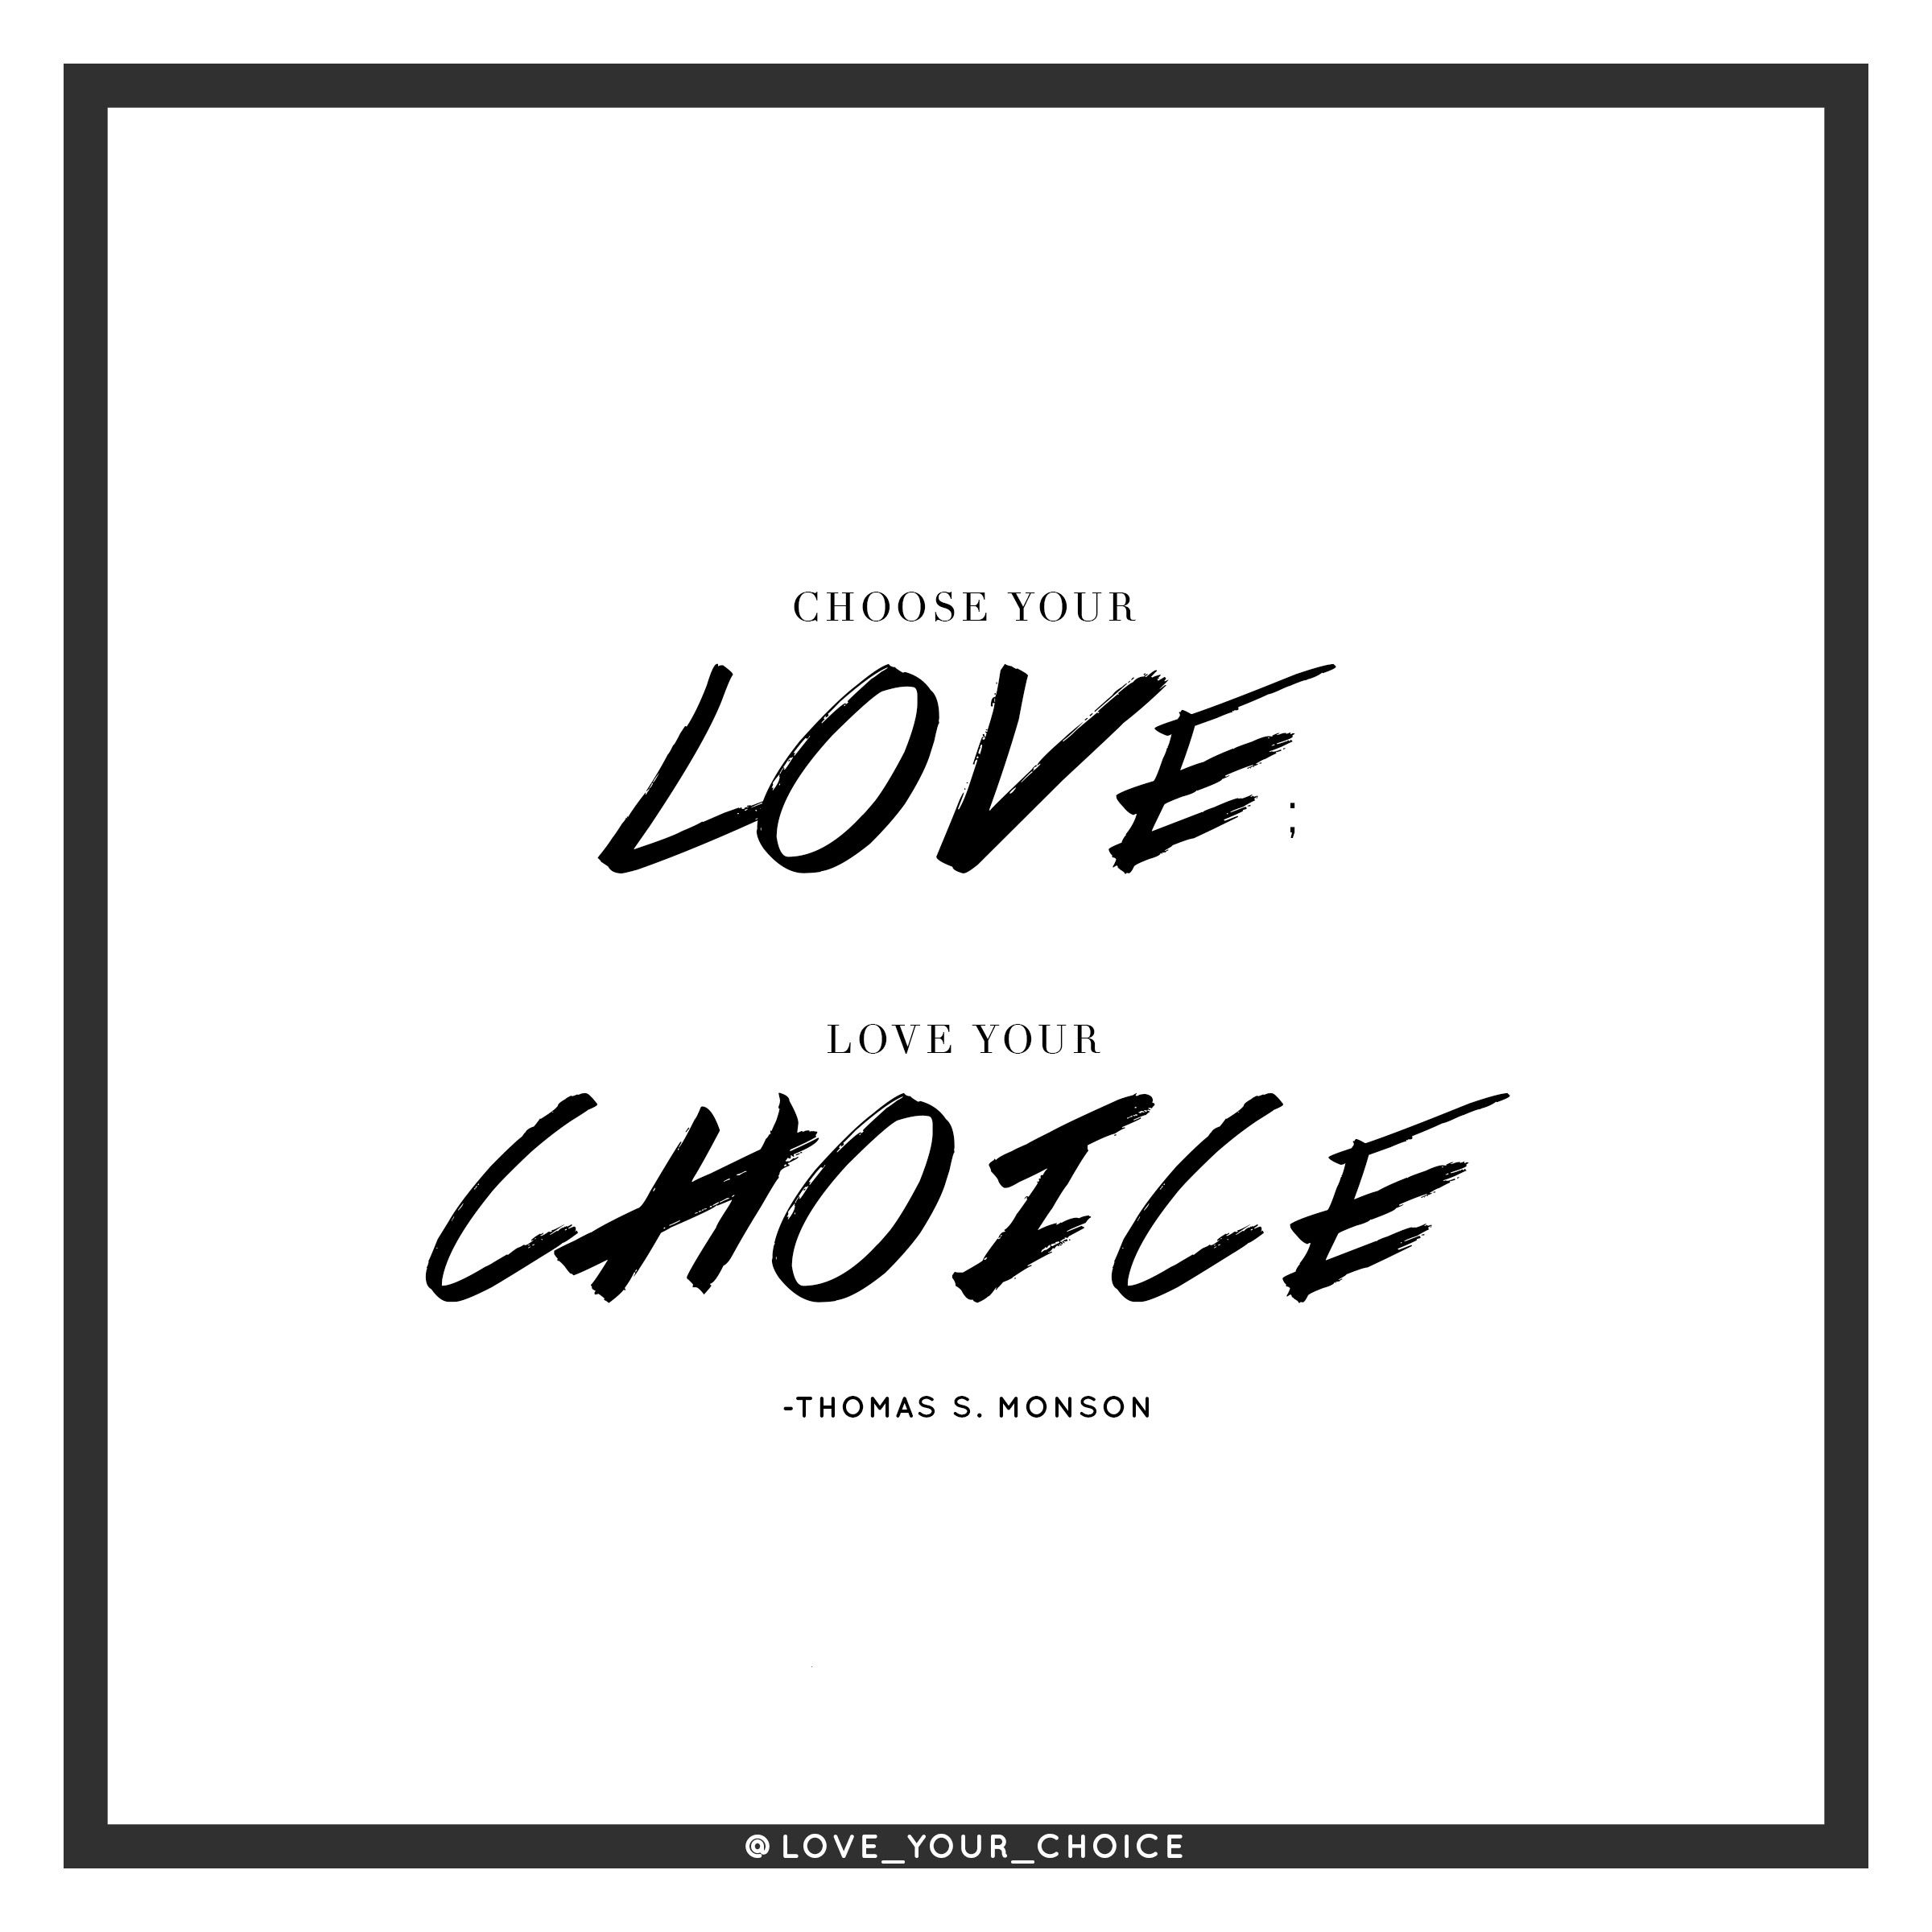 Choose Your Love Love Your Choice Thomas S Monson Quote About